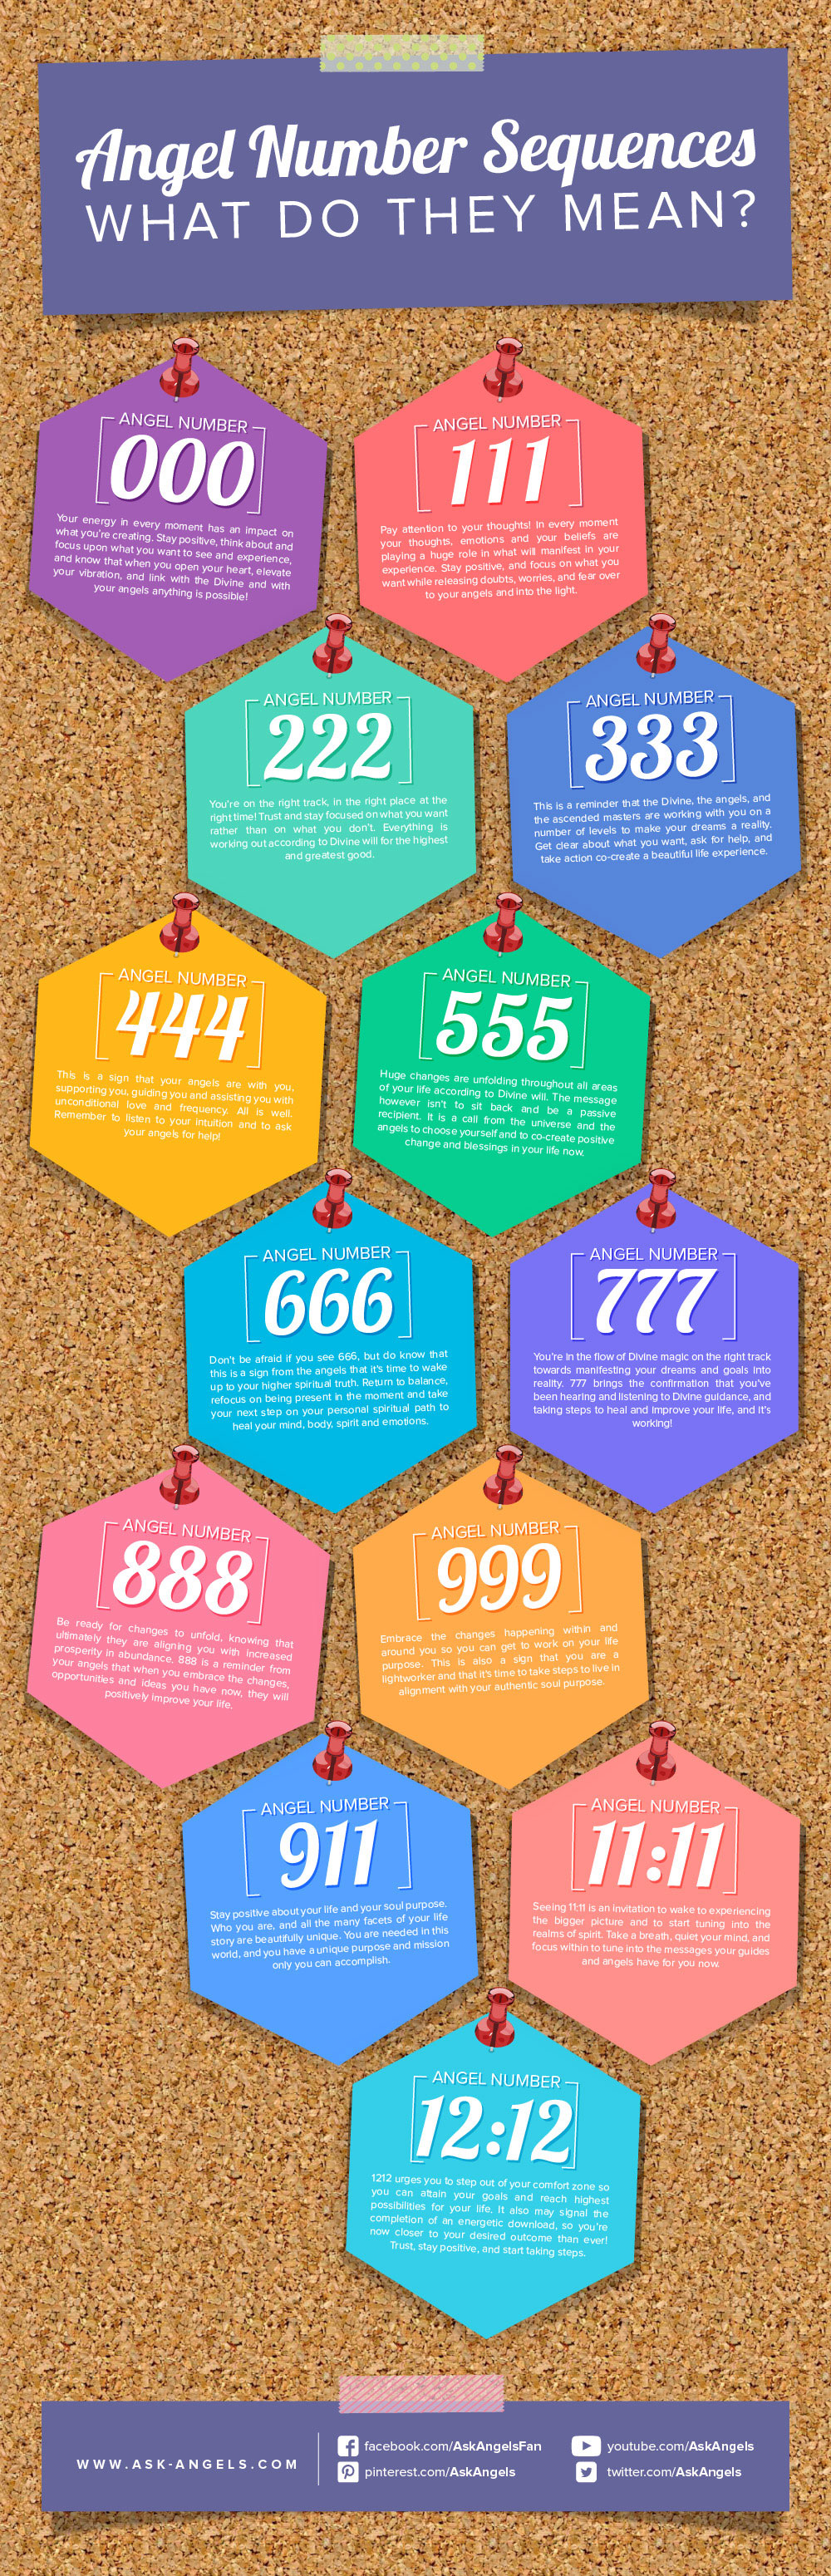 666 meaning law of attraction angel numbers guide biocorpaavc Choice Image